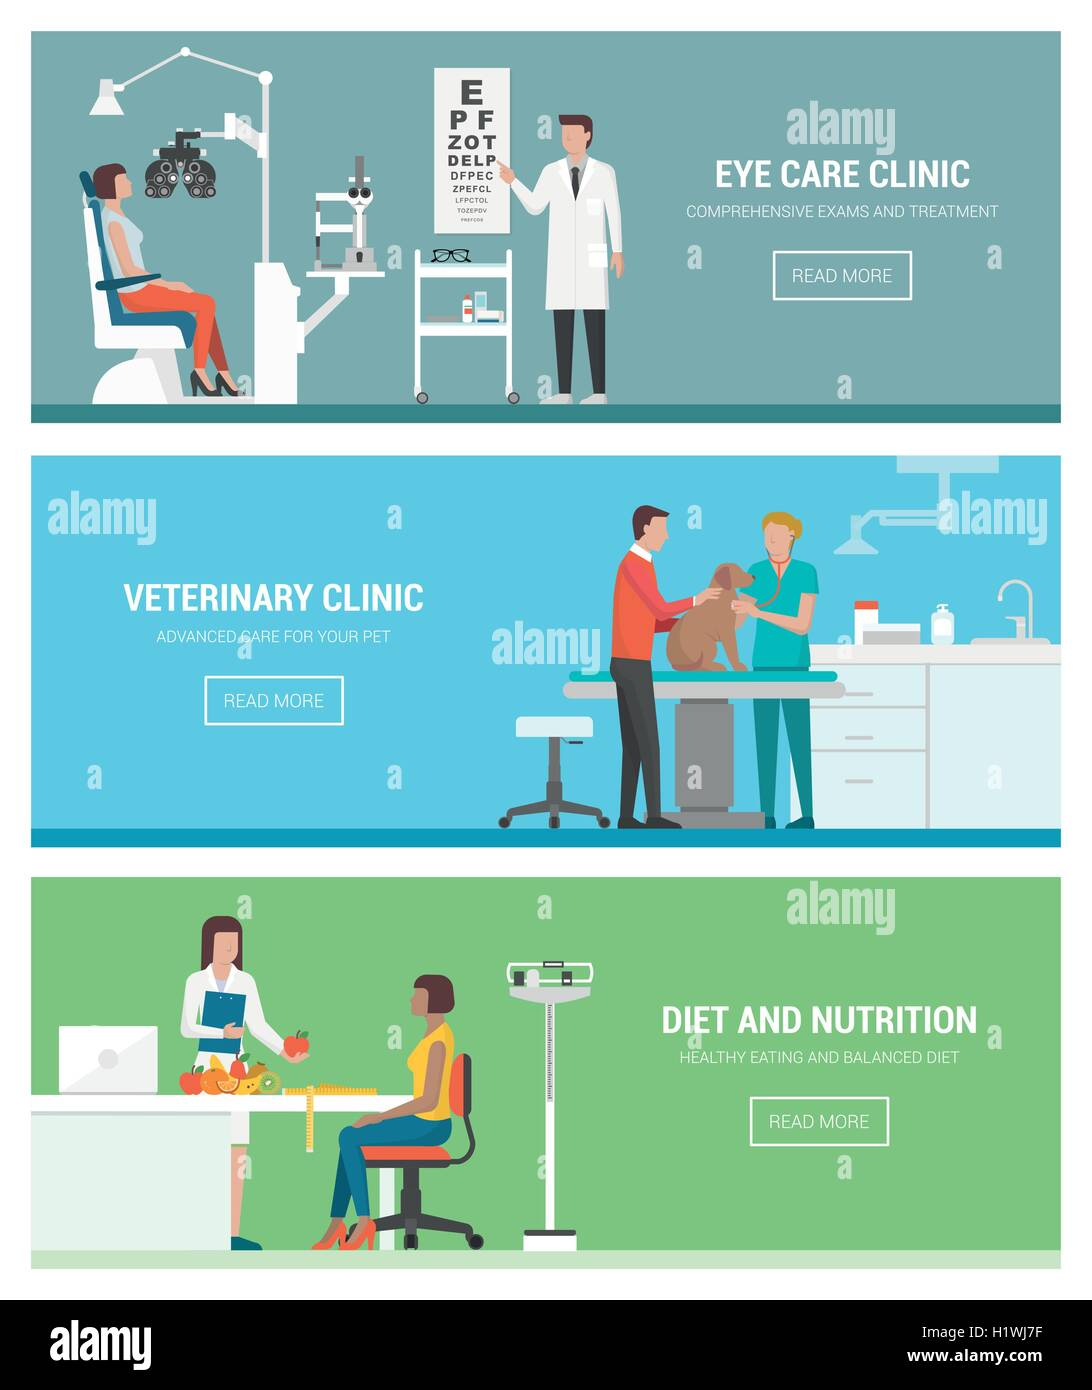 Healthcare and clinics banners set: optician and eye examination, veterinary animal clinic and dietitian with patient - Stock Vector